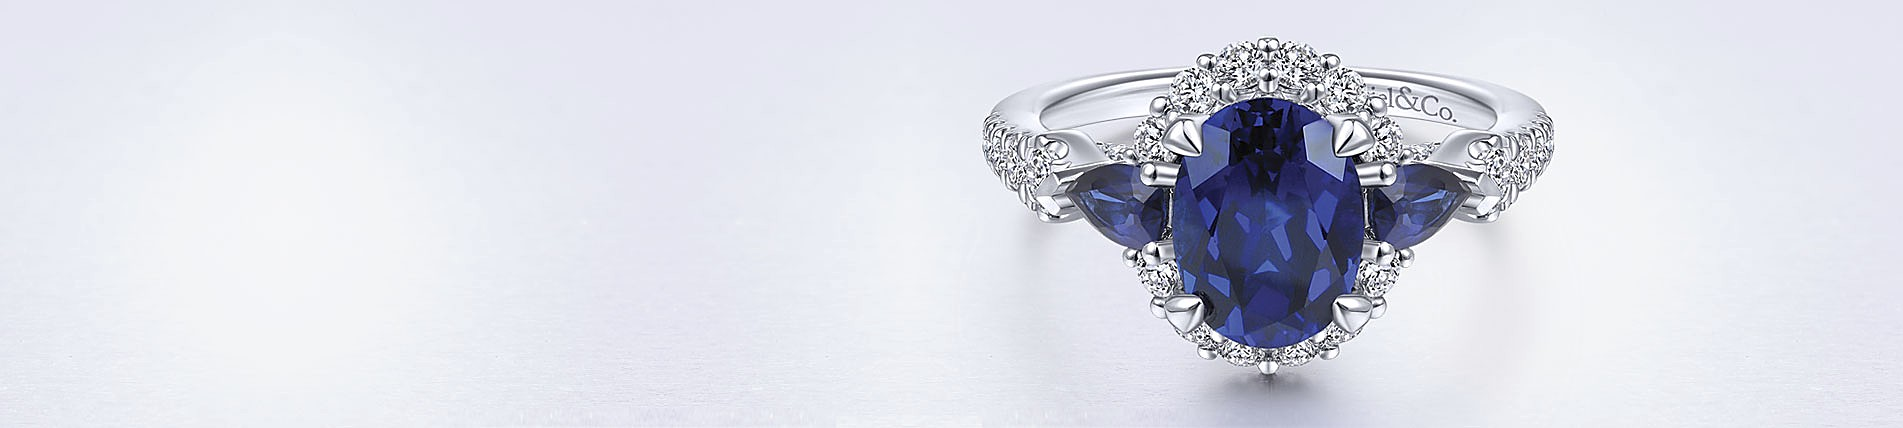 ring front sapphire paladium rings web lau products bliss blue minimalist green gold white engagement